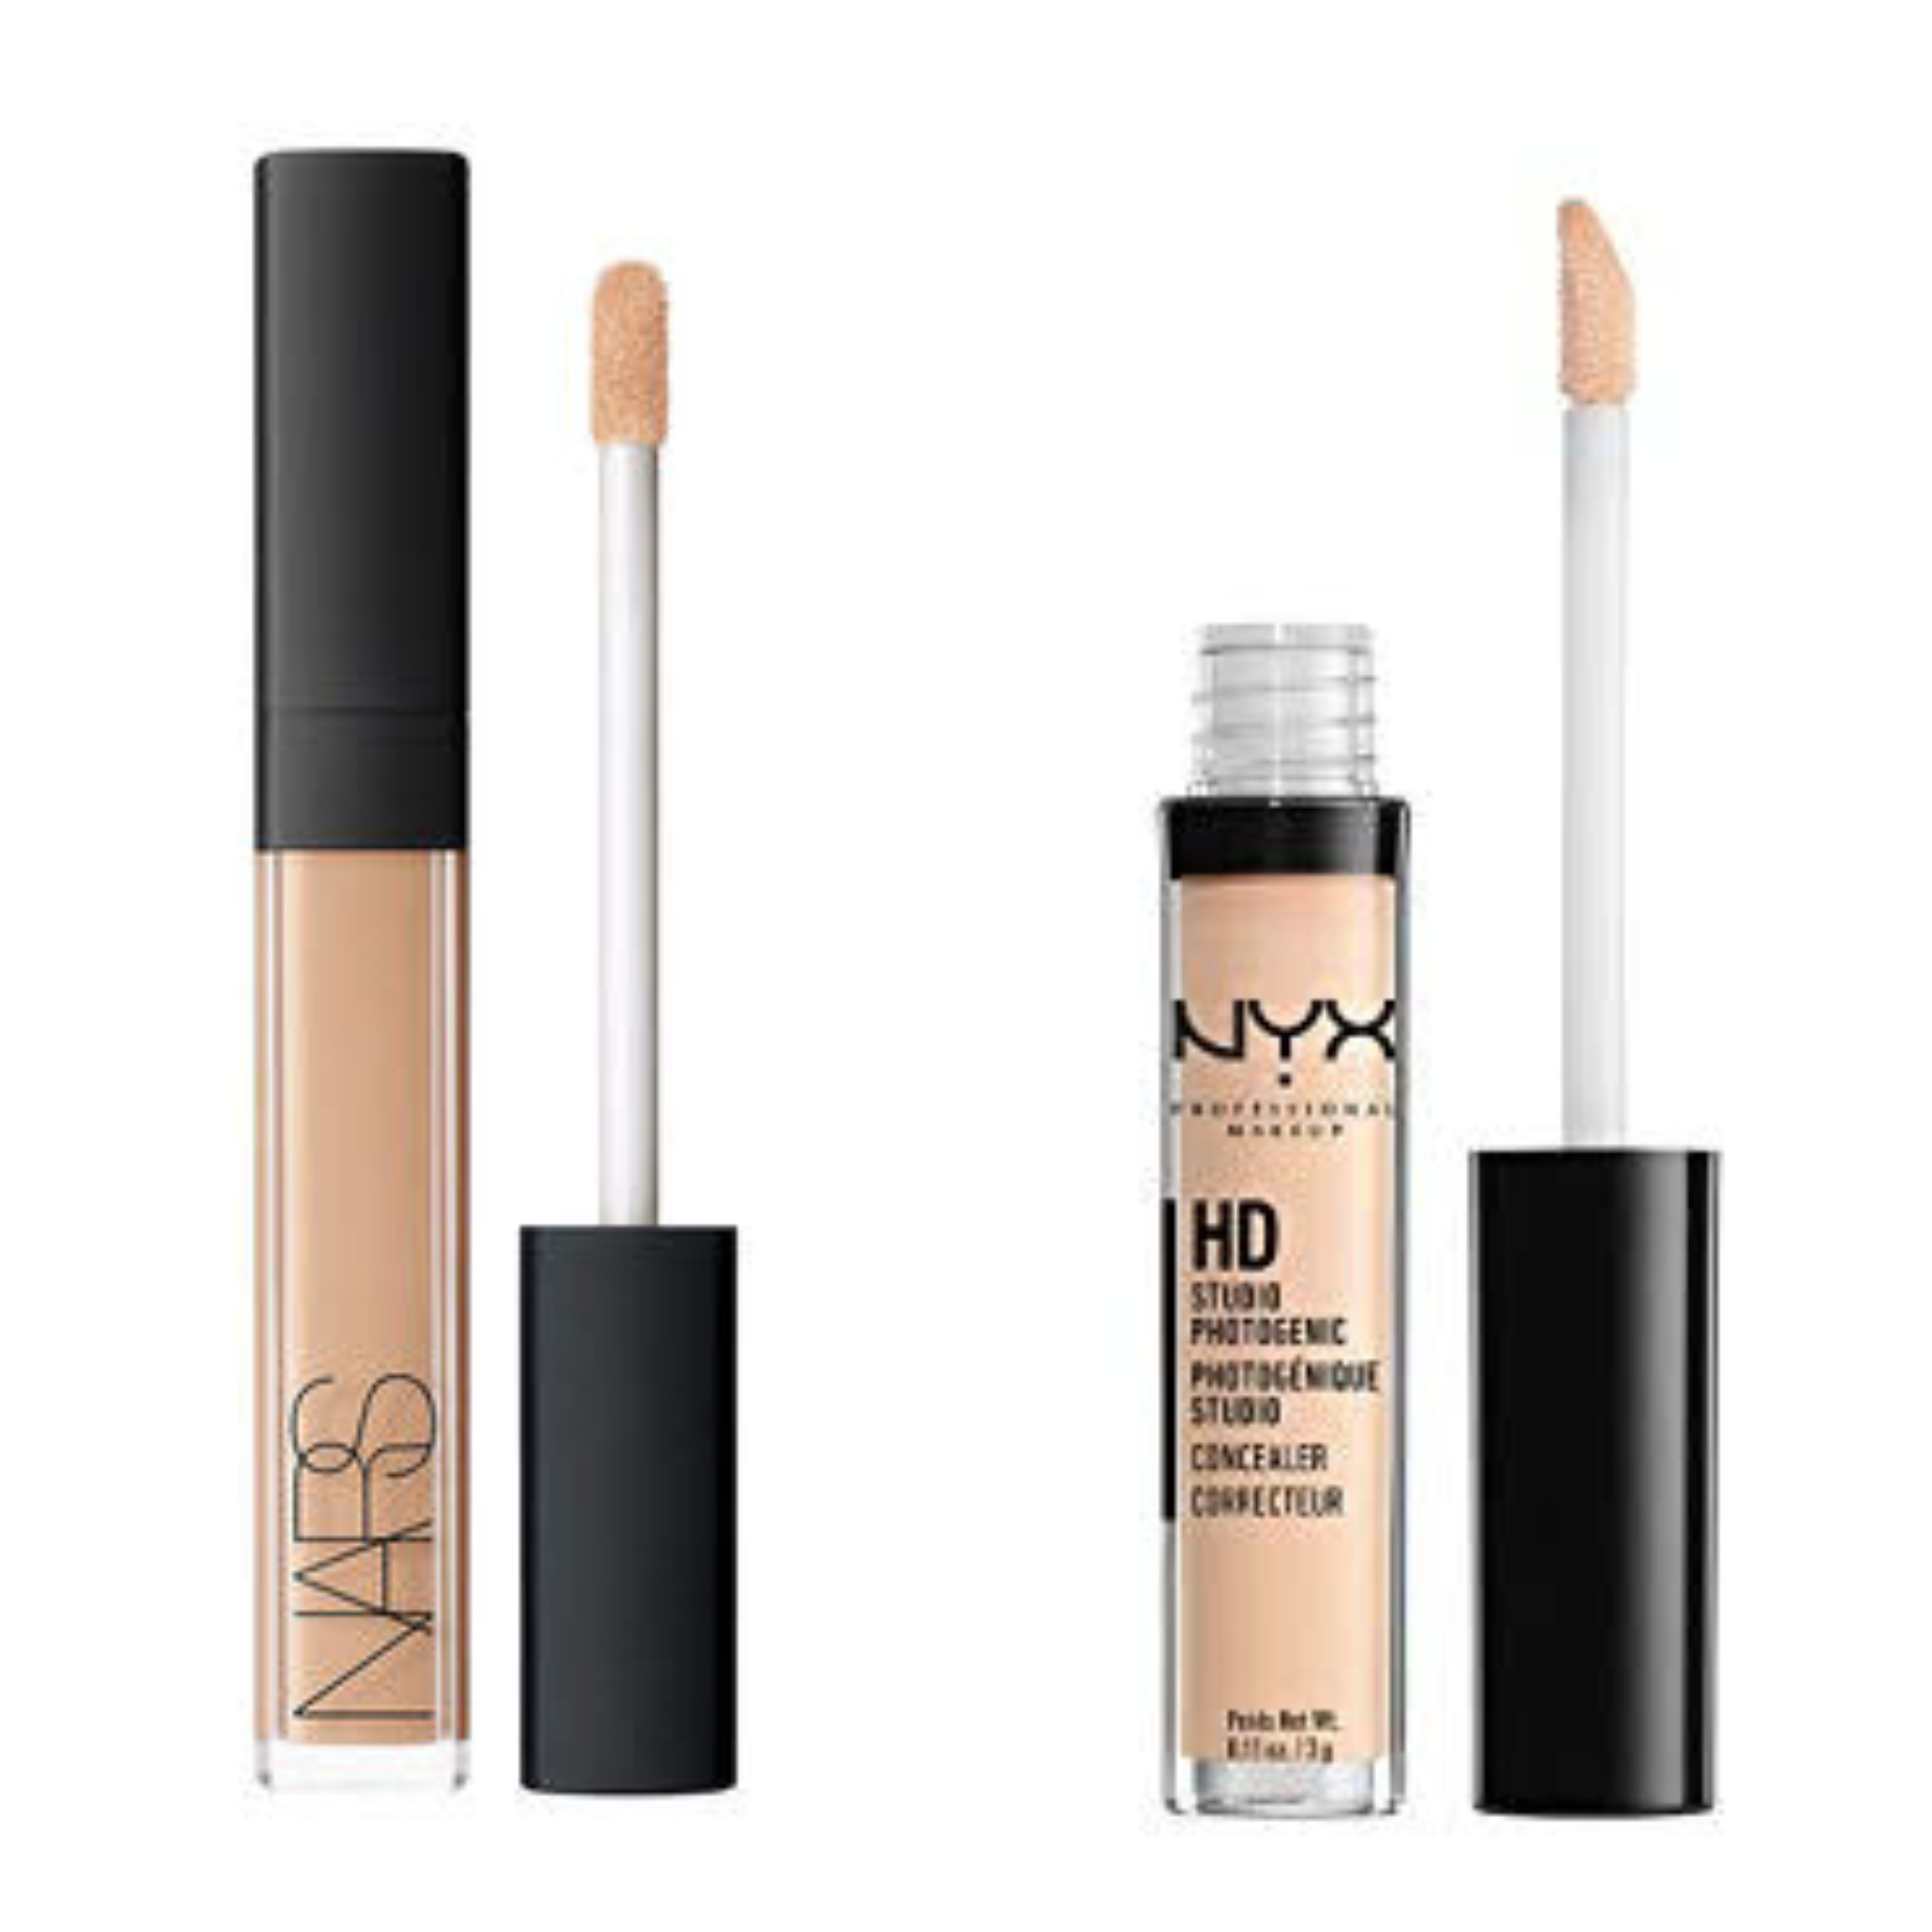 Nars Radiant Creamy Concealer vs Nyx Cant Stop Won't Stop Contour Concealer